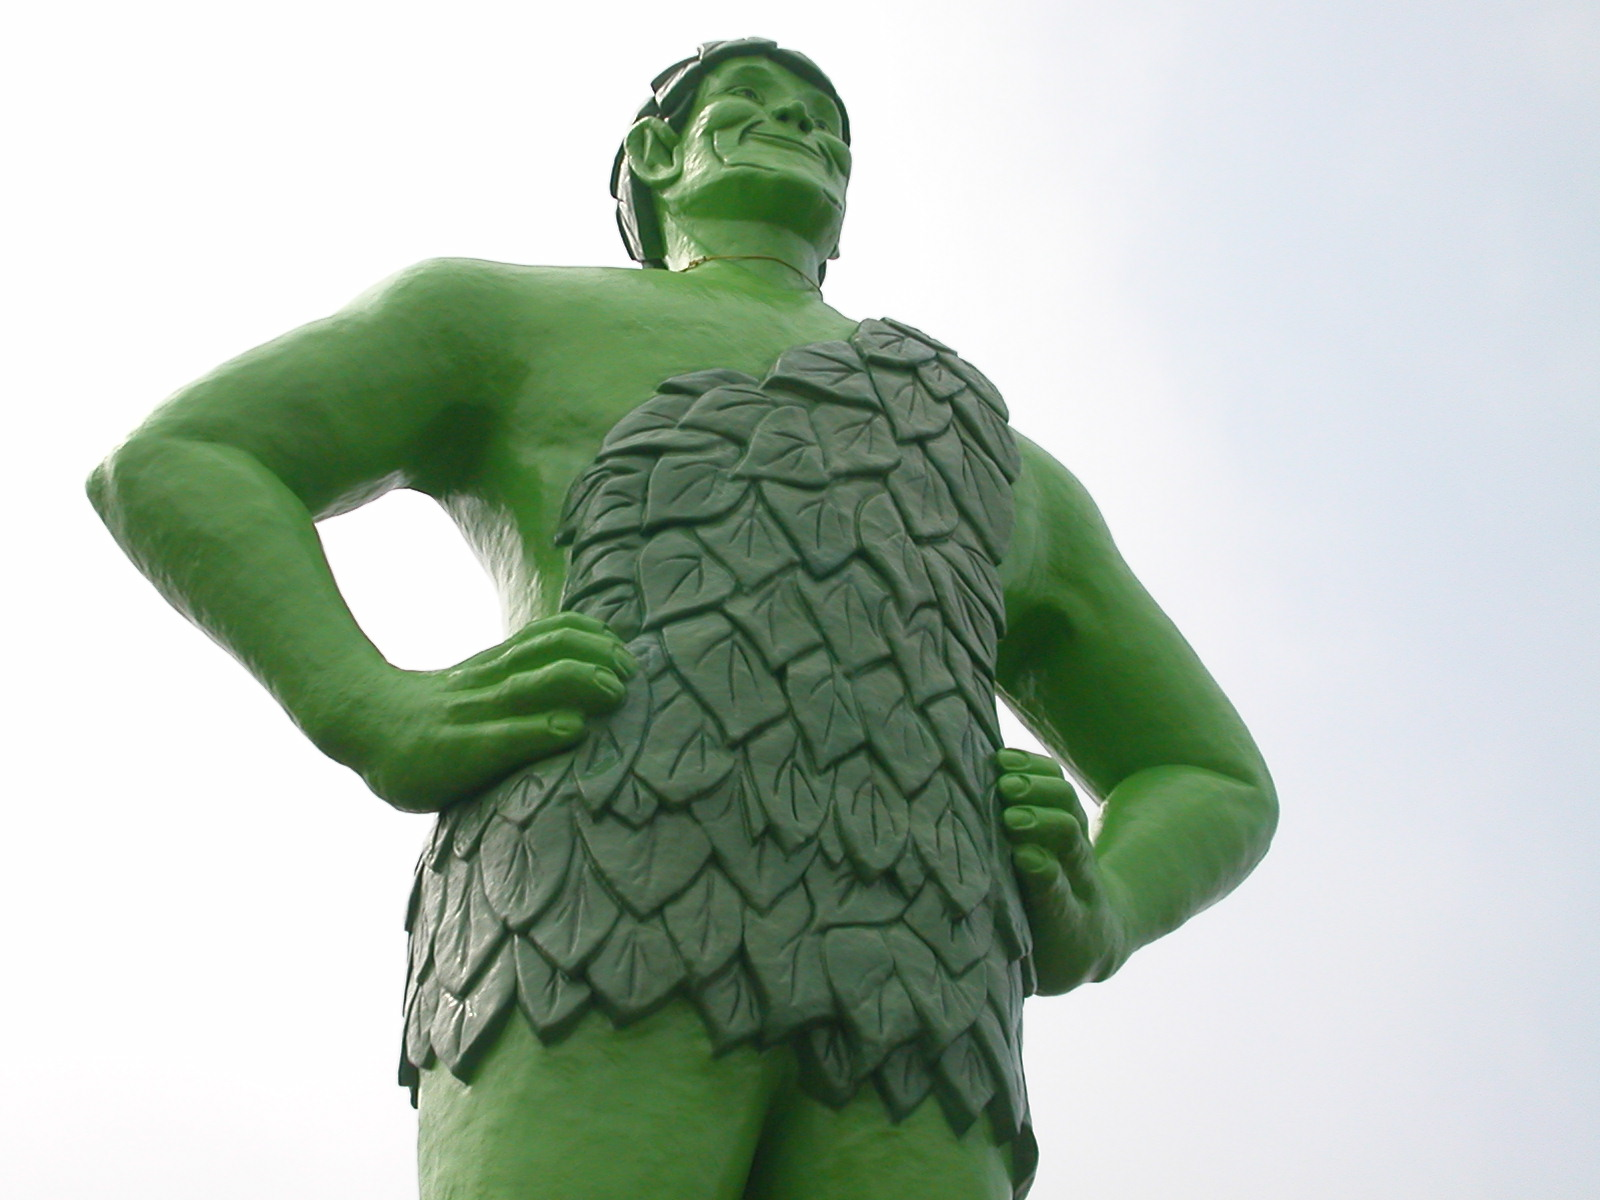 Jolly Green Giant Wikipedia The Free Encyclopedia